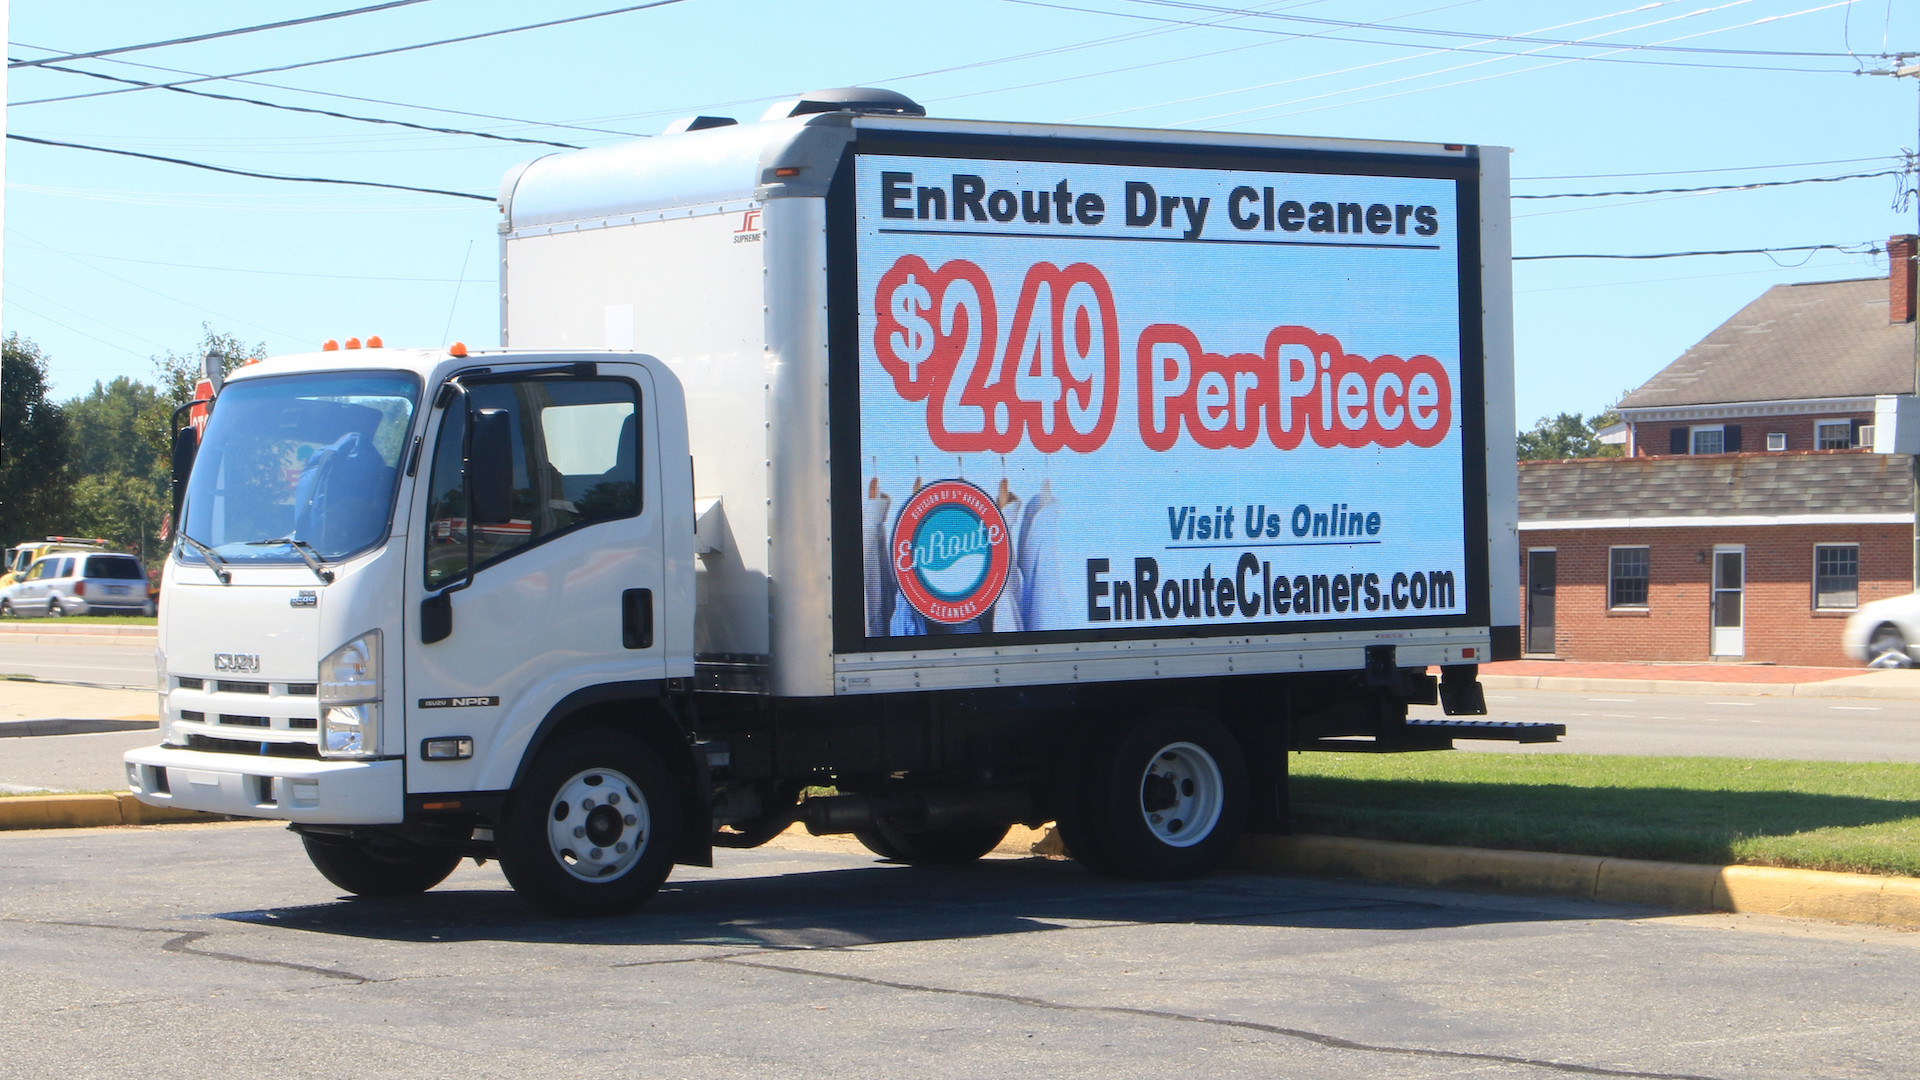 ENROUTE DRY CLEANERS - PIC - 003 - MATV